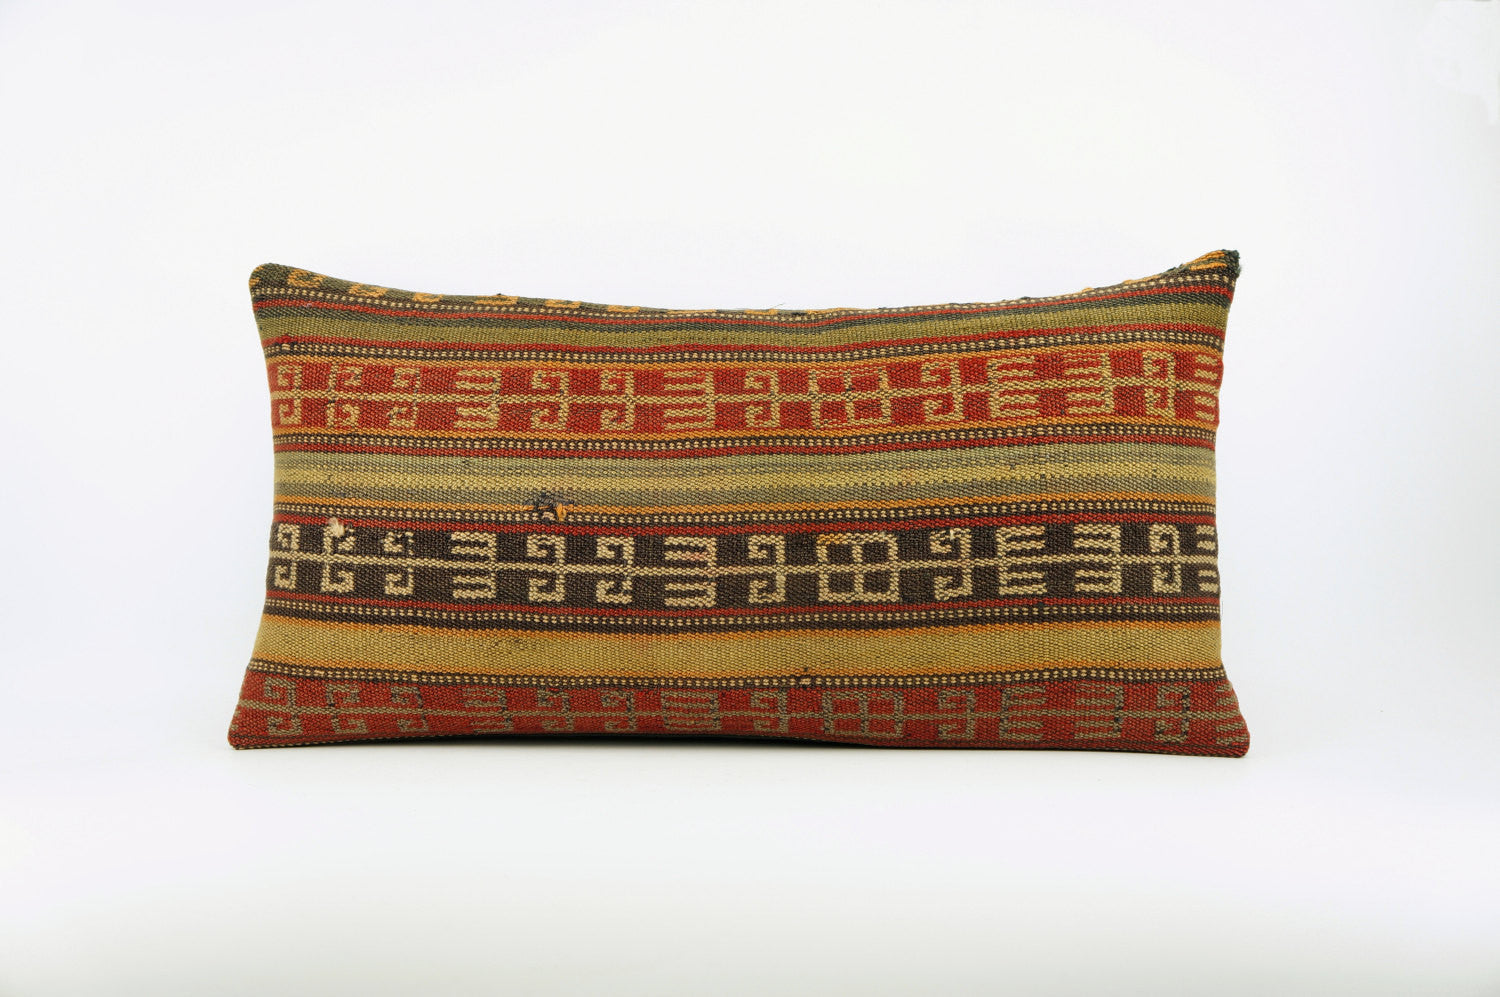 12x24 Ethnic decorative pillow cover , Bohemian pillow case, Modern home decor Geometric Multi colour handwoven pillow ,1649 - kilimpillowstore  - 1